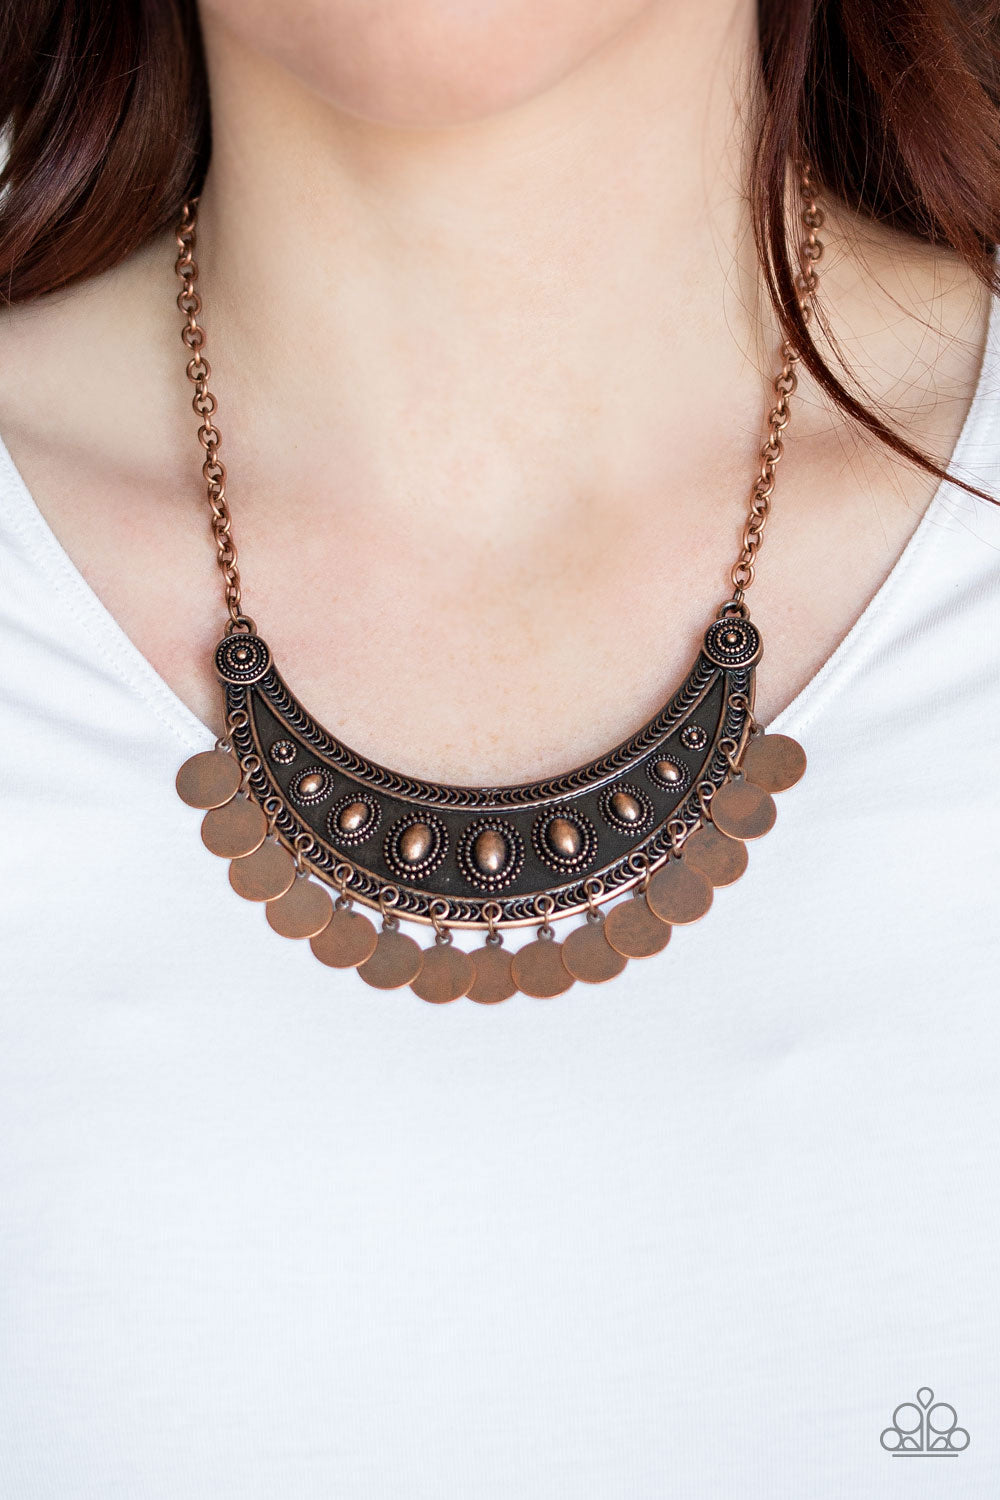 Paparazzi Jewelry Necklace CHIMEs UP - Copper